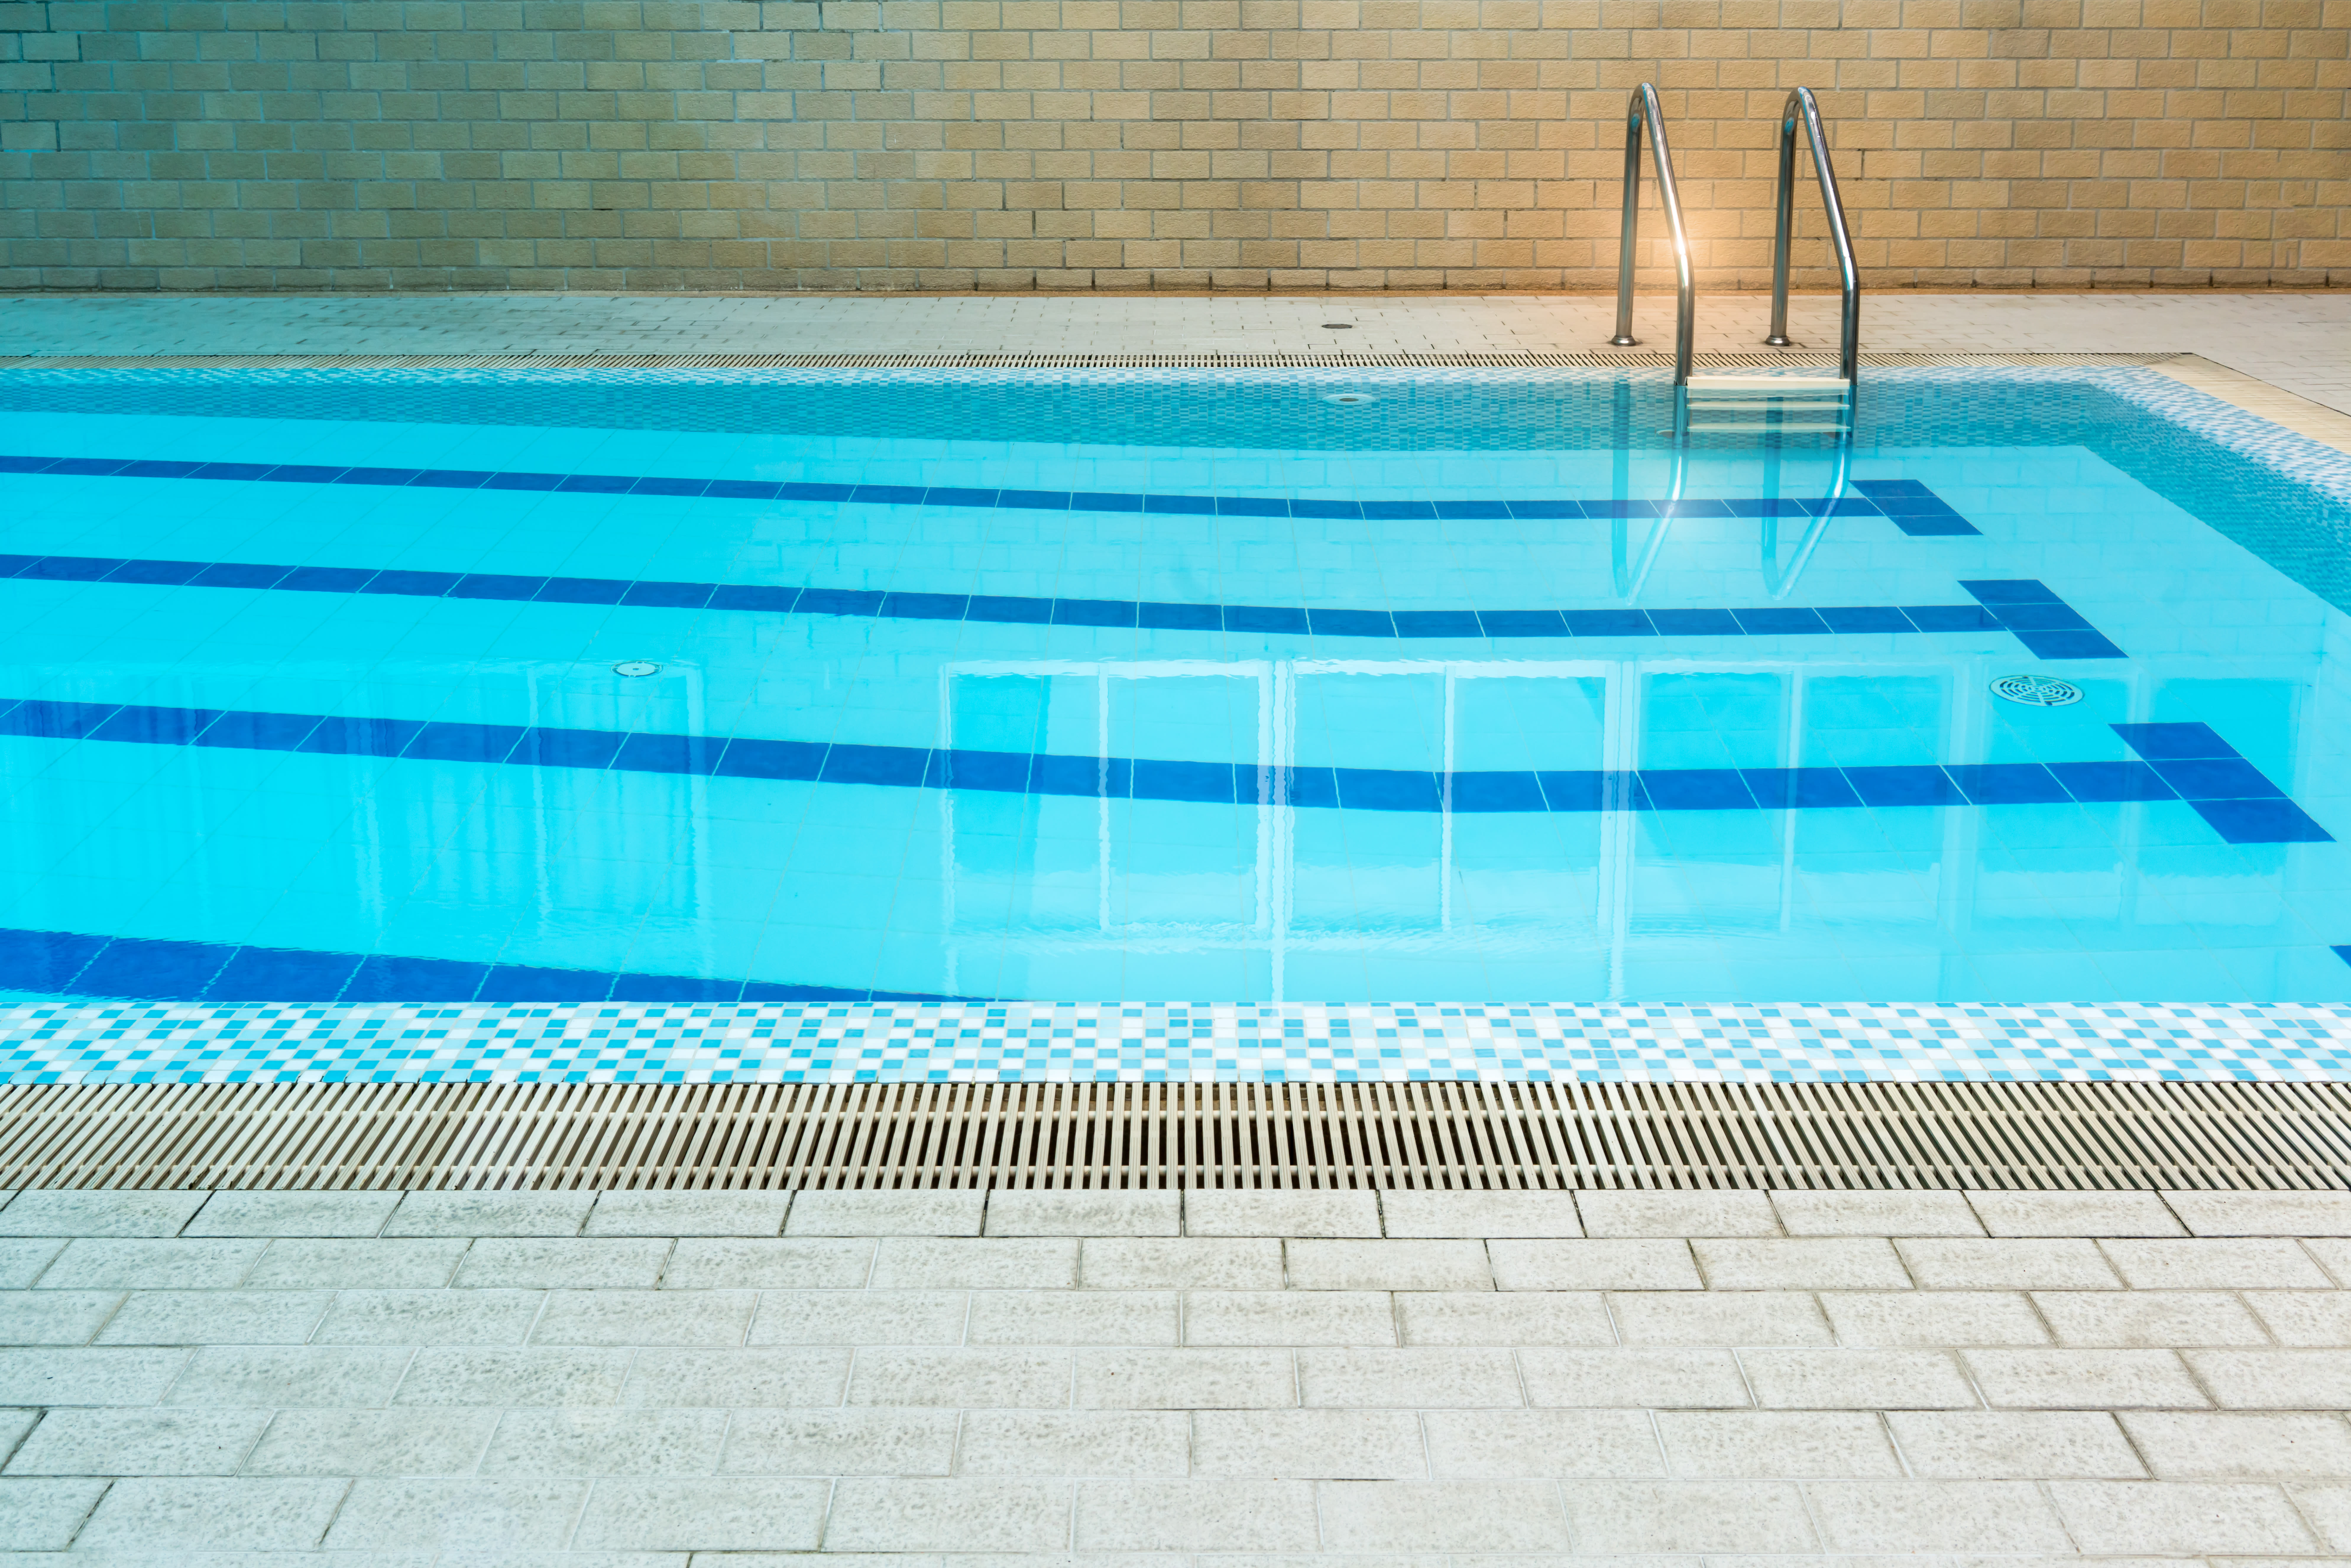 Swimming pool with lanes at The Venue in Rochester, New York